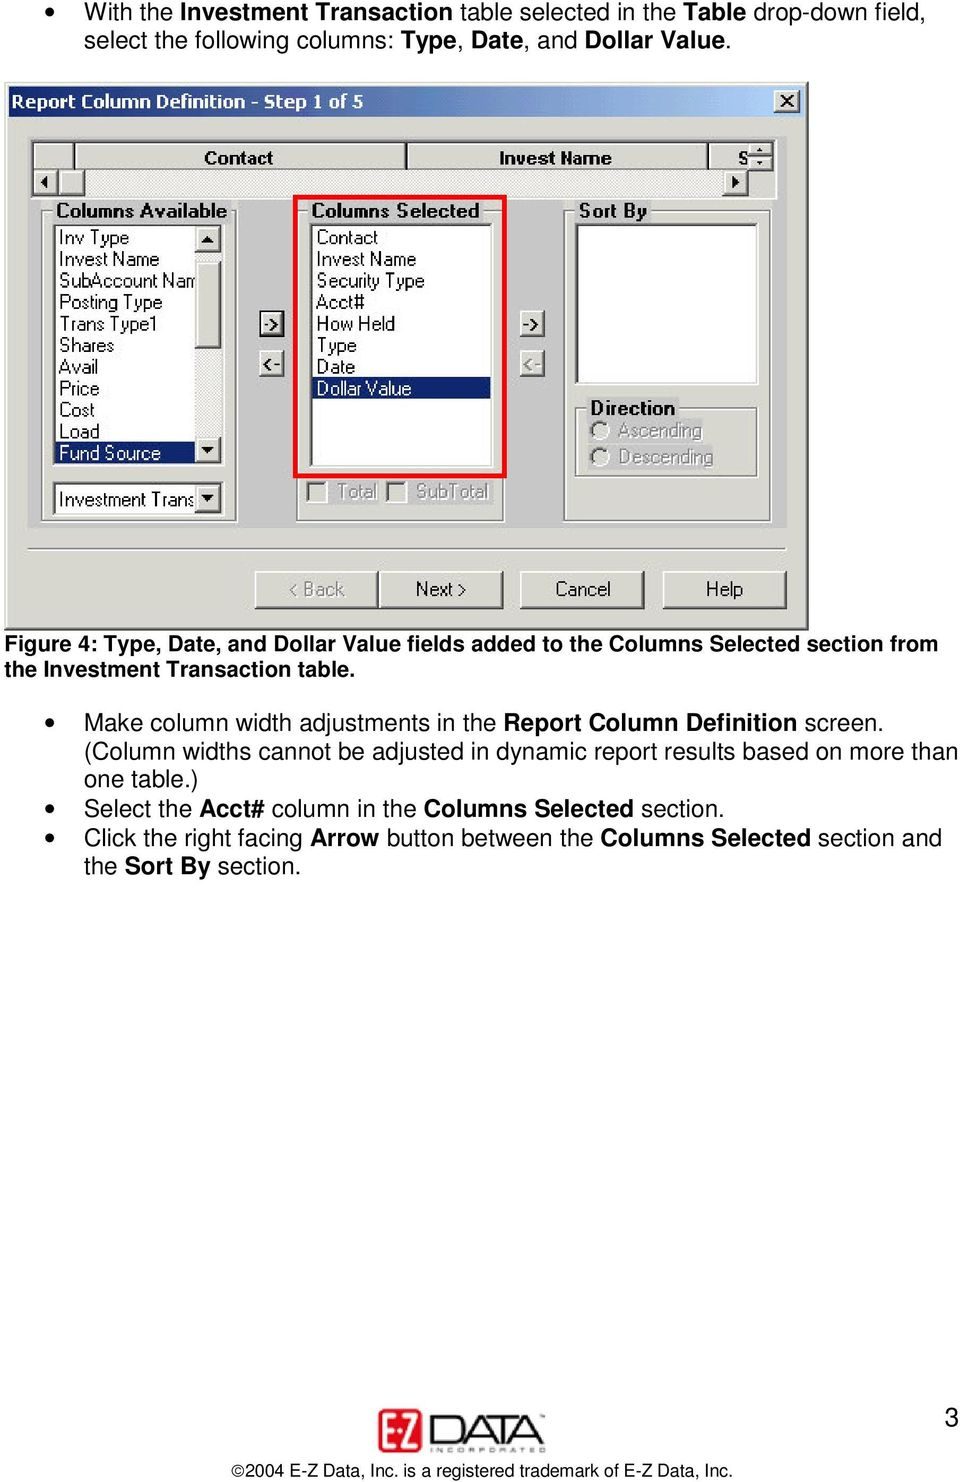 Make column width adjustments in the Report Column Definition screen.